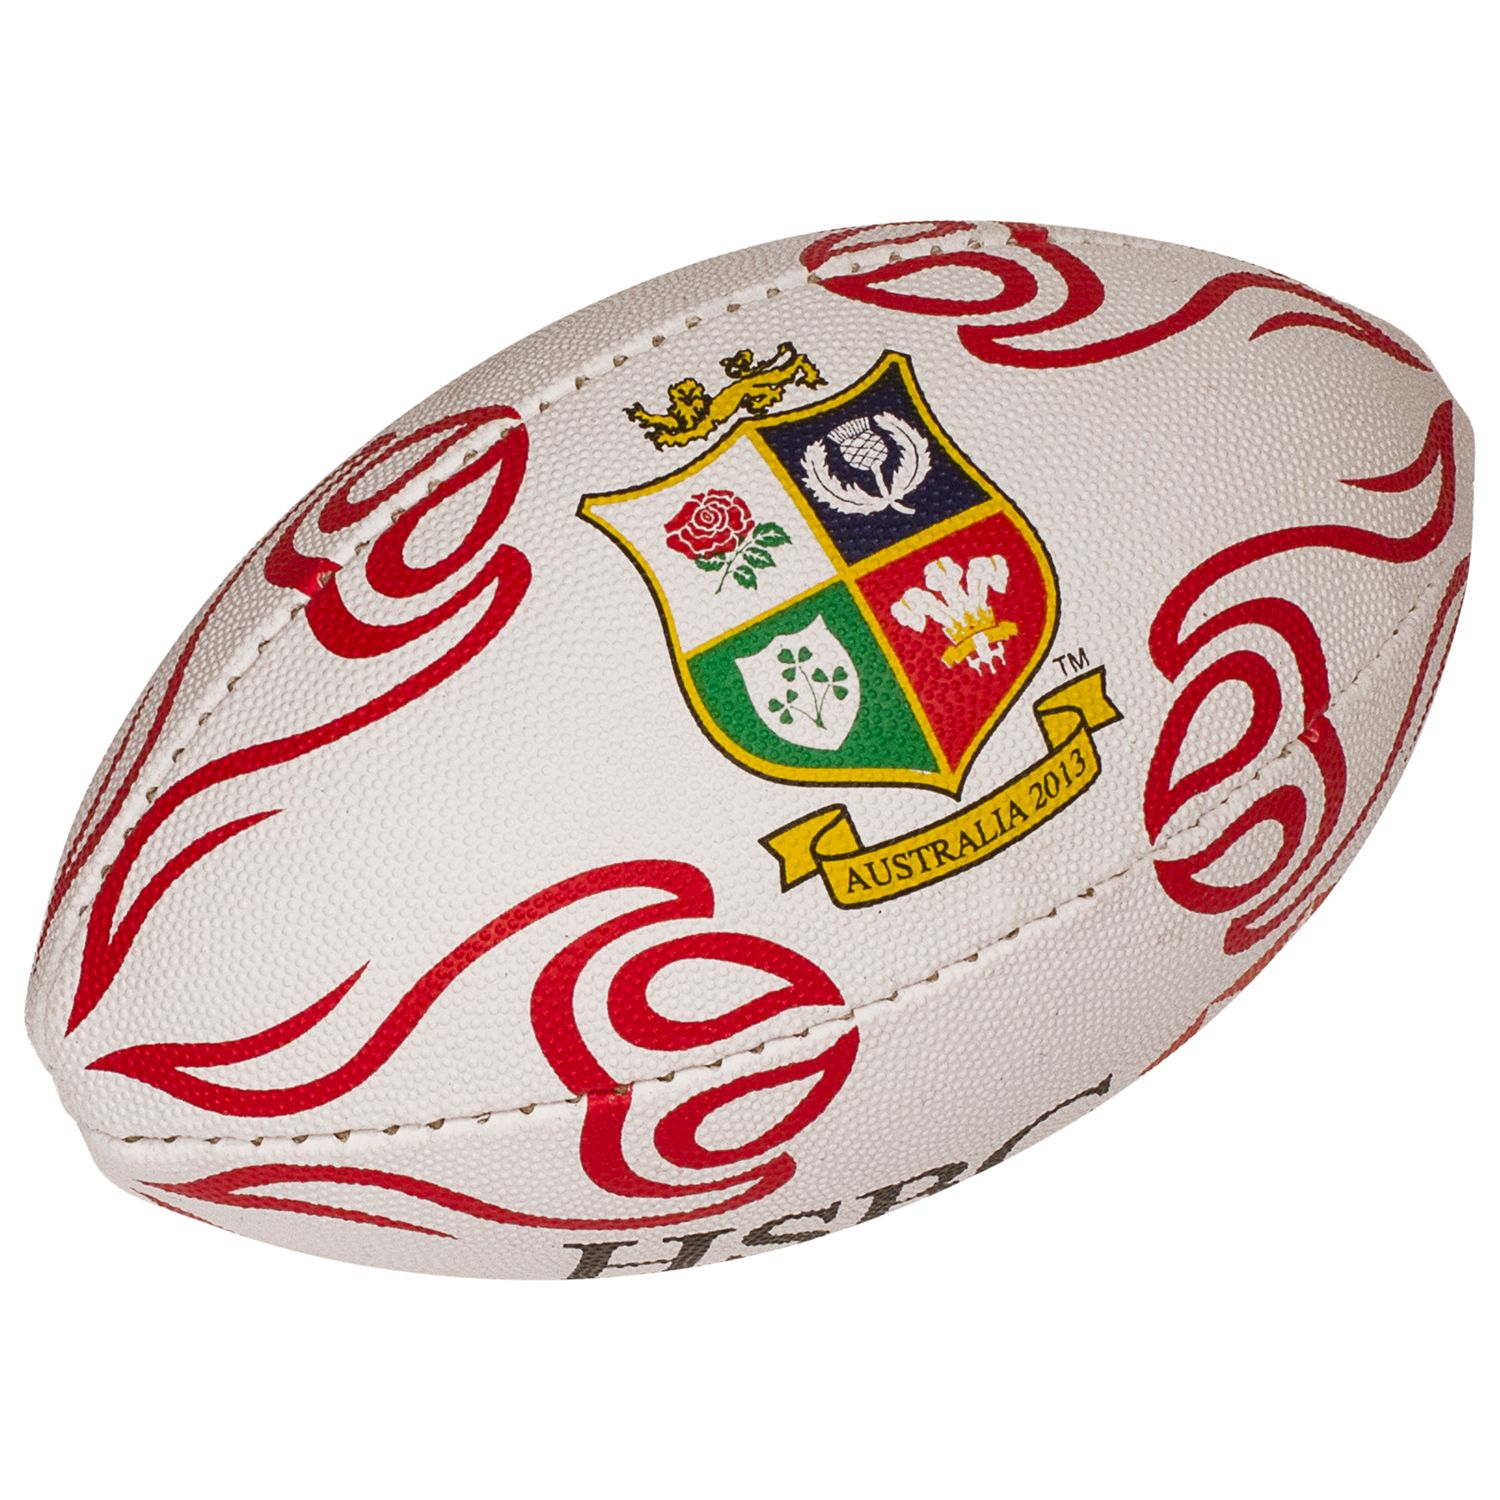 Rhino Rugby For The British And Irish Lions 2013 Official Mini Ball, White